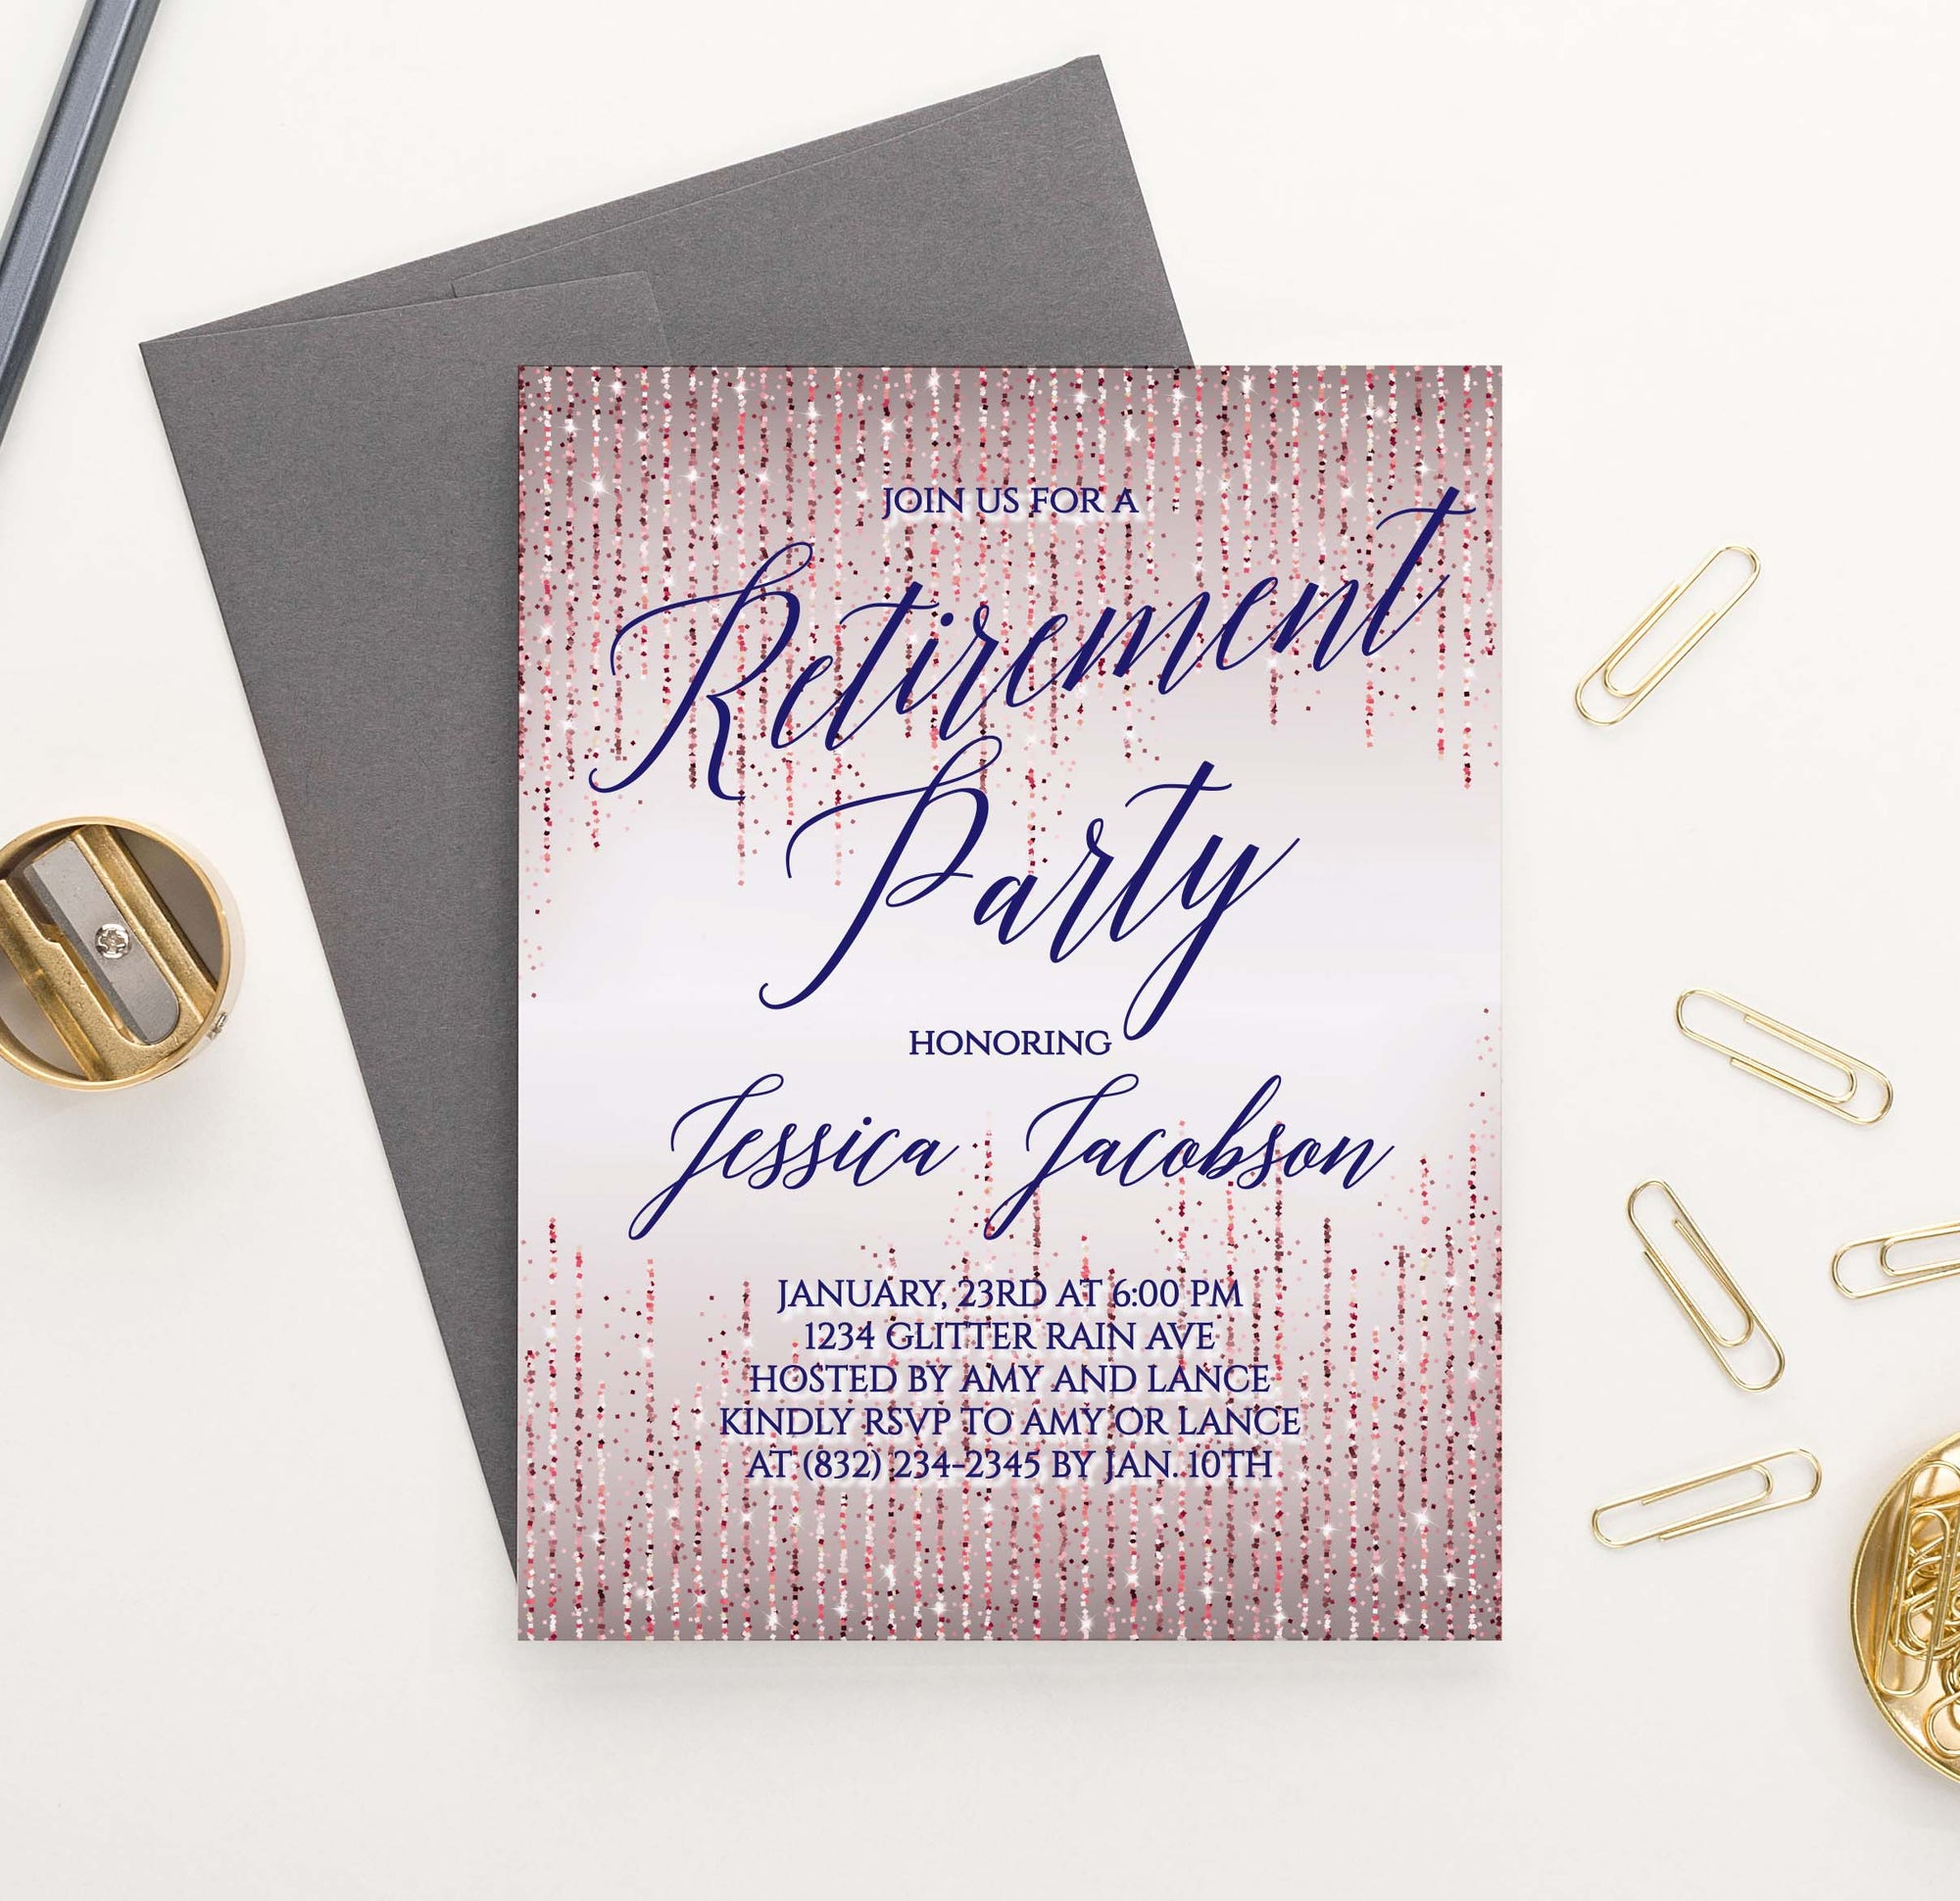 RPI003 elegant rose gold retirement party invitation personalized glitter sparkle